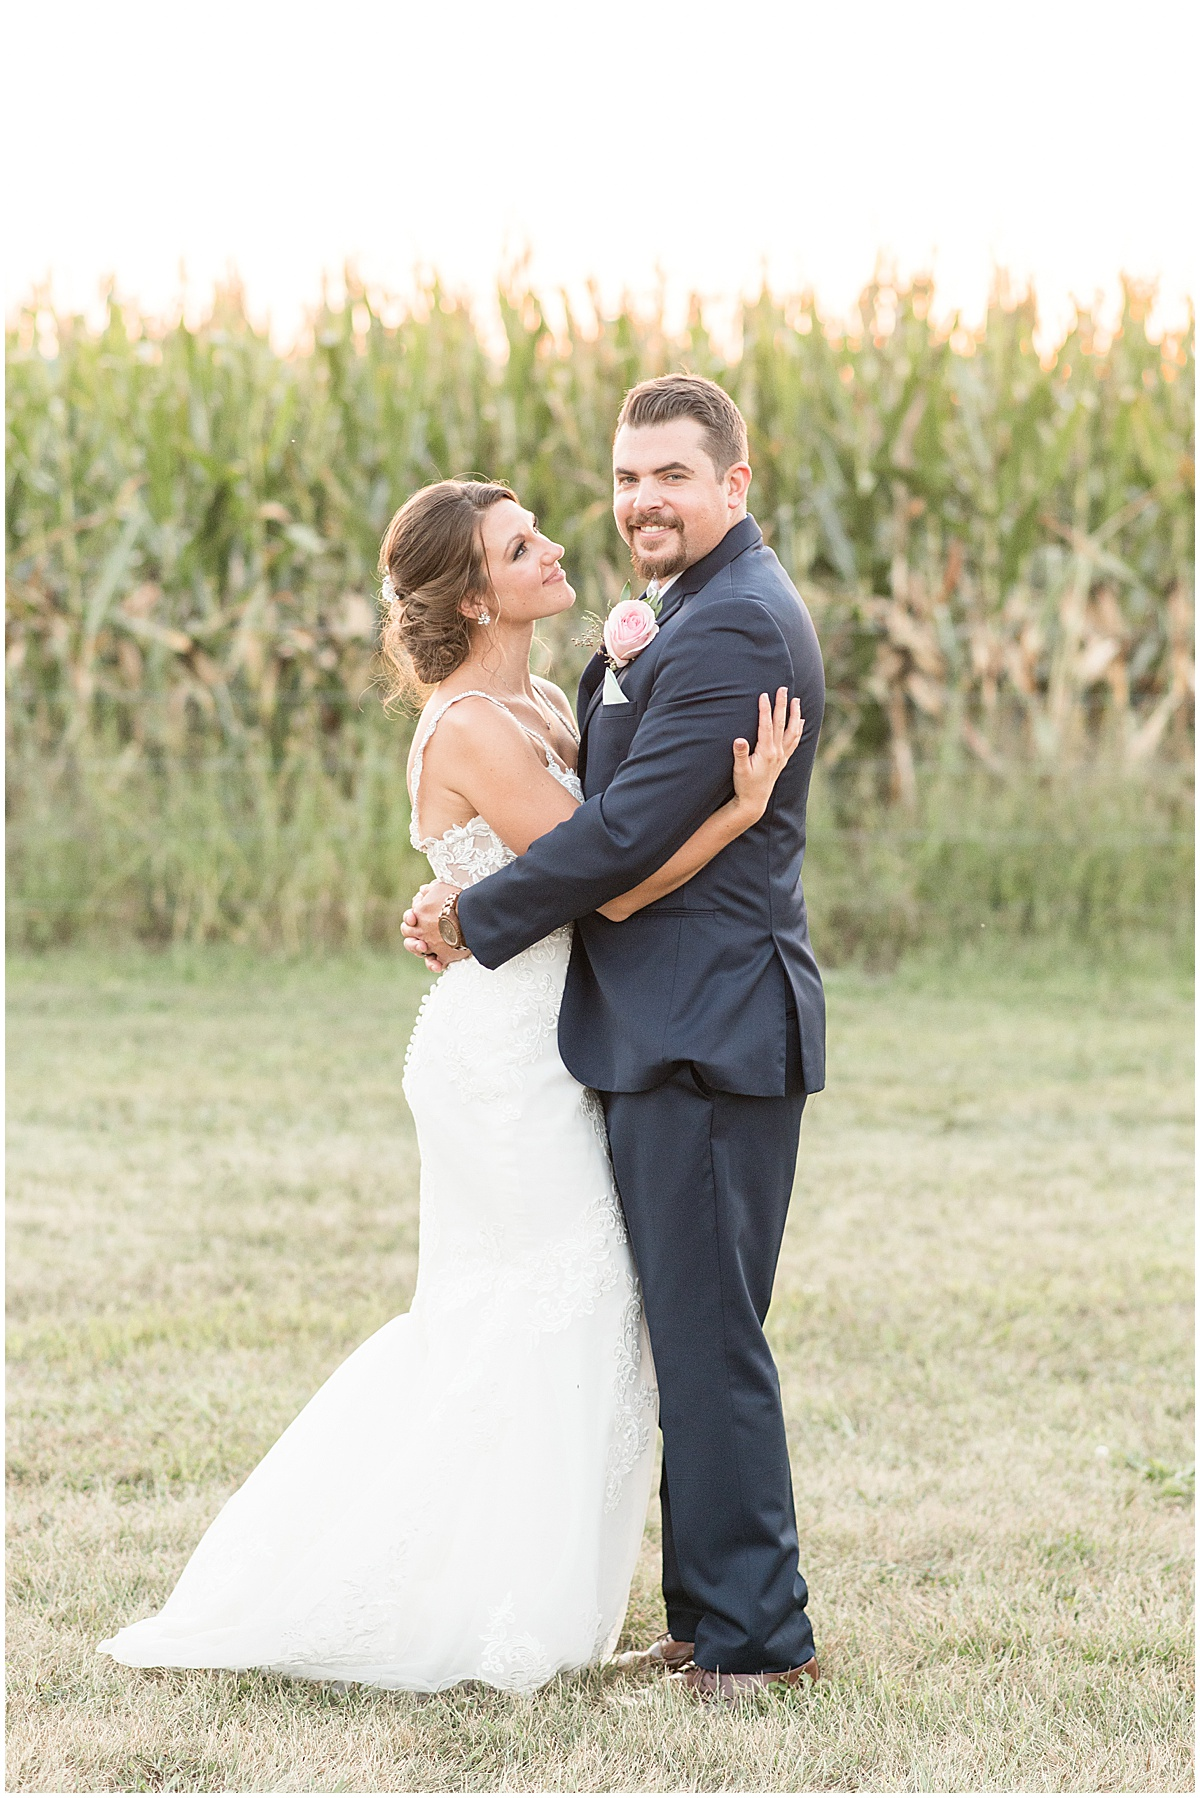 Bride and groom sunset photos at the Jasper County Fairgrounds in Rensselaer, Indiana